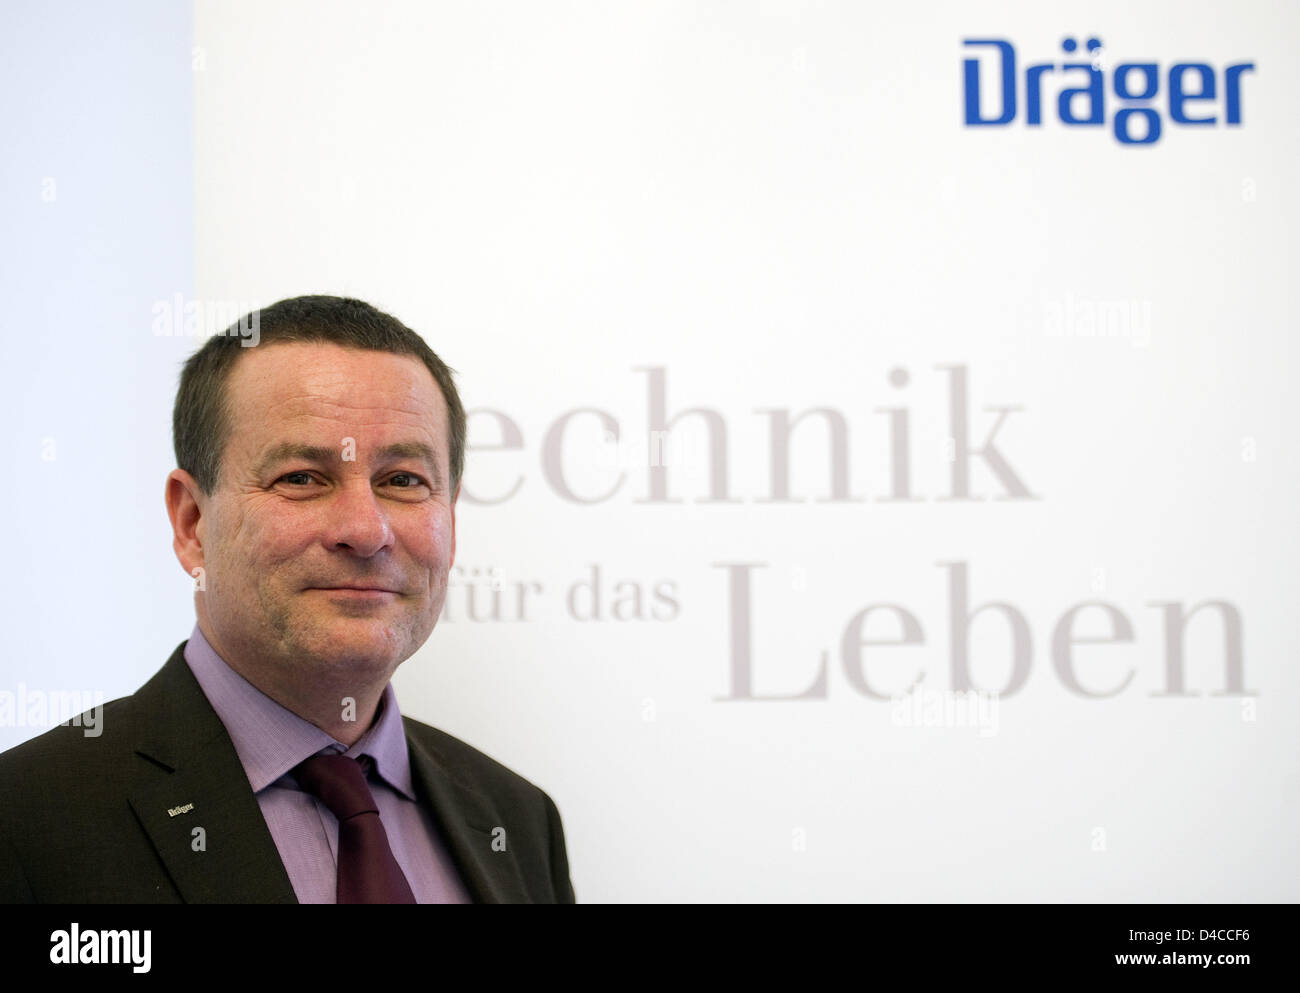 Stefan Draeger, CEO and chairman of the executive board of